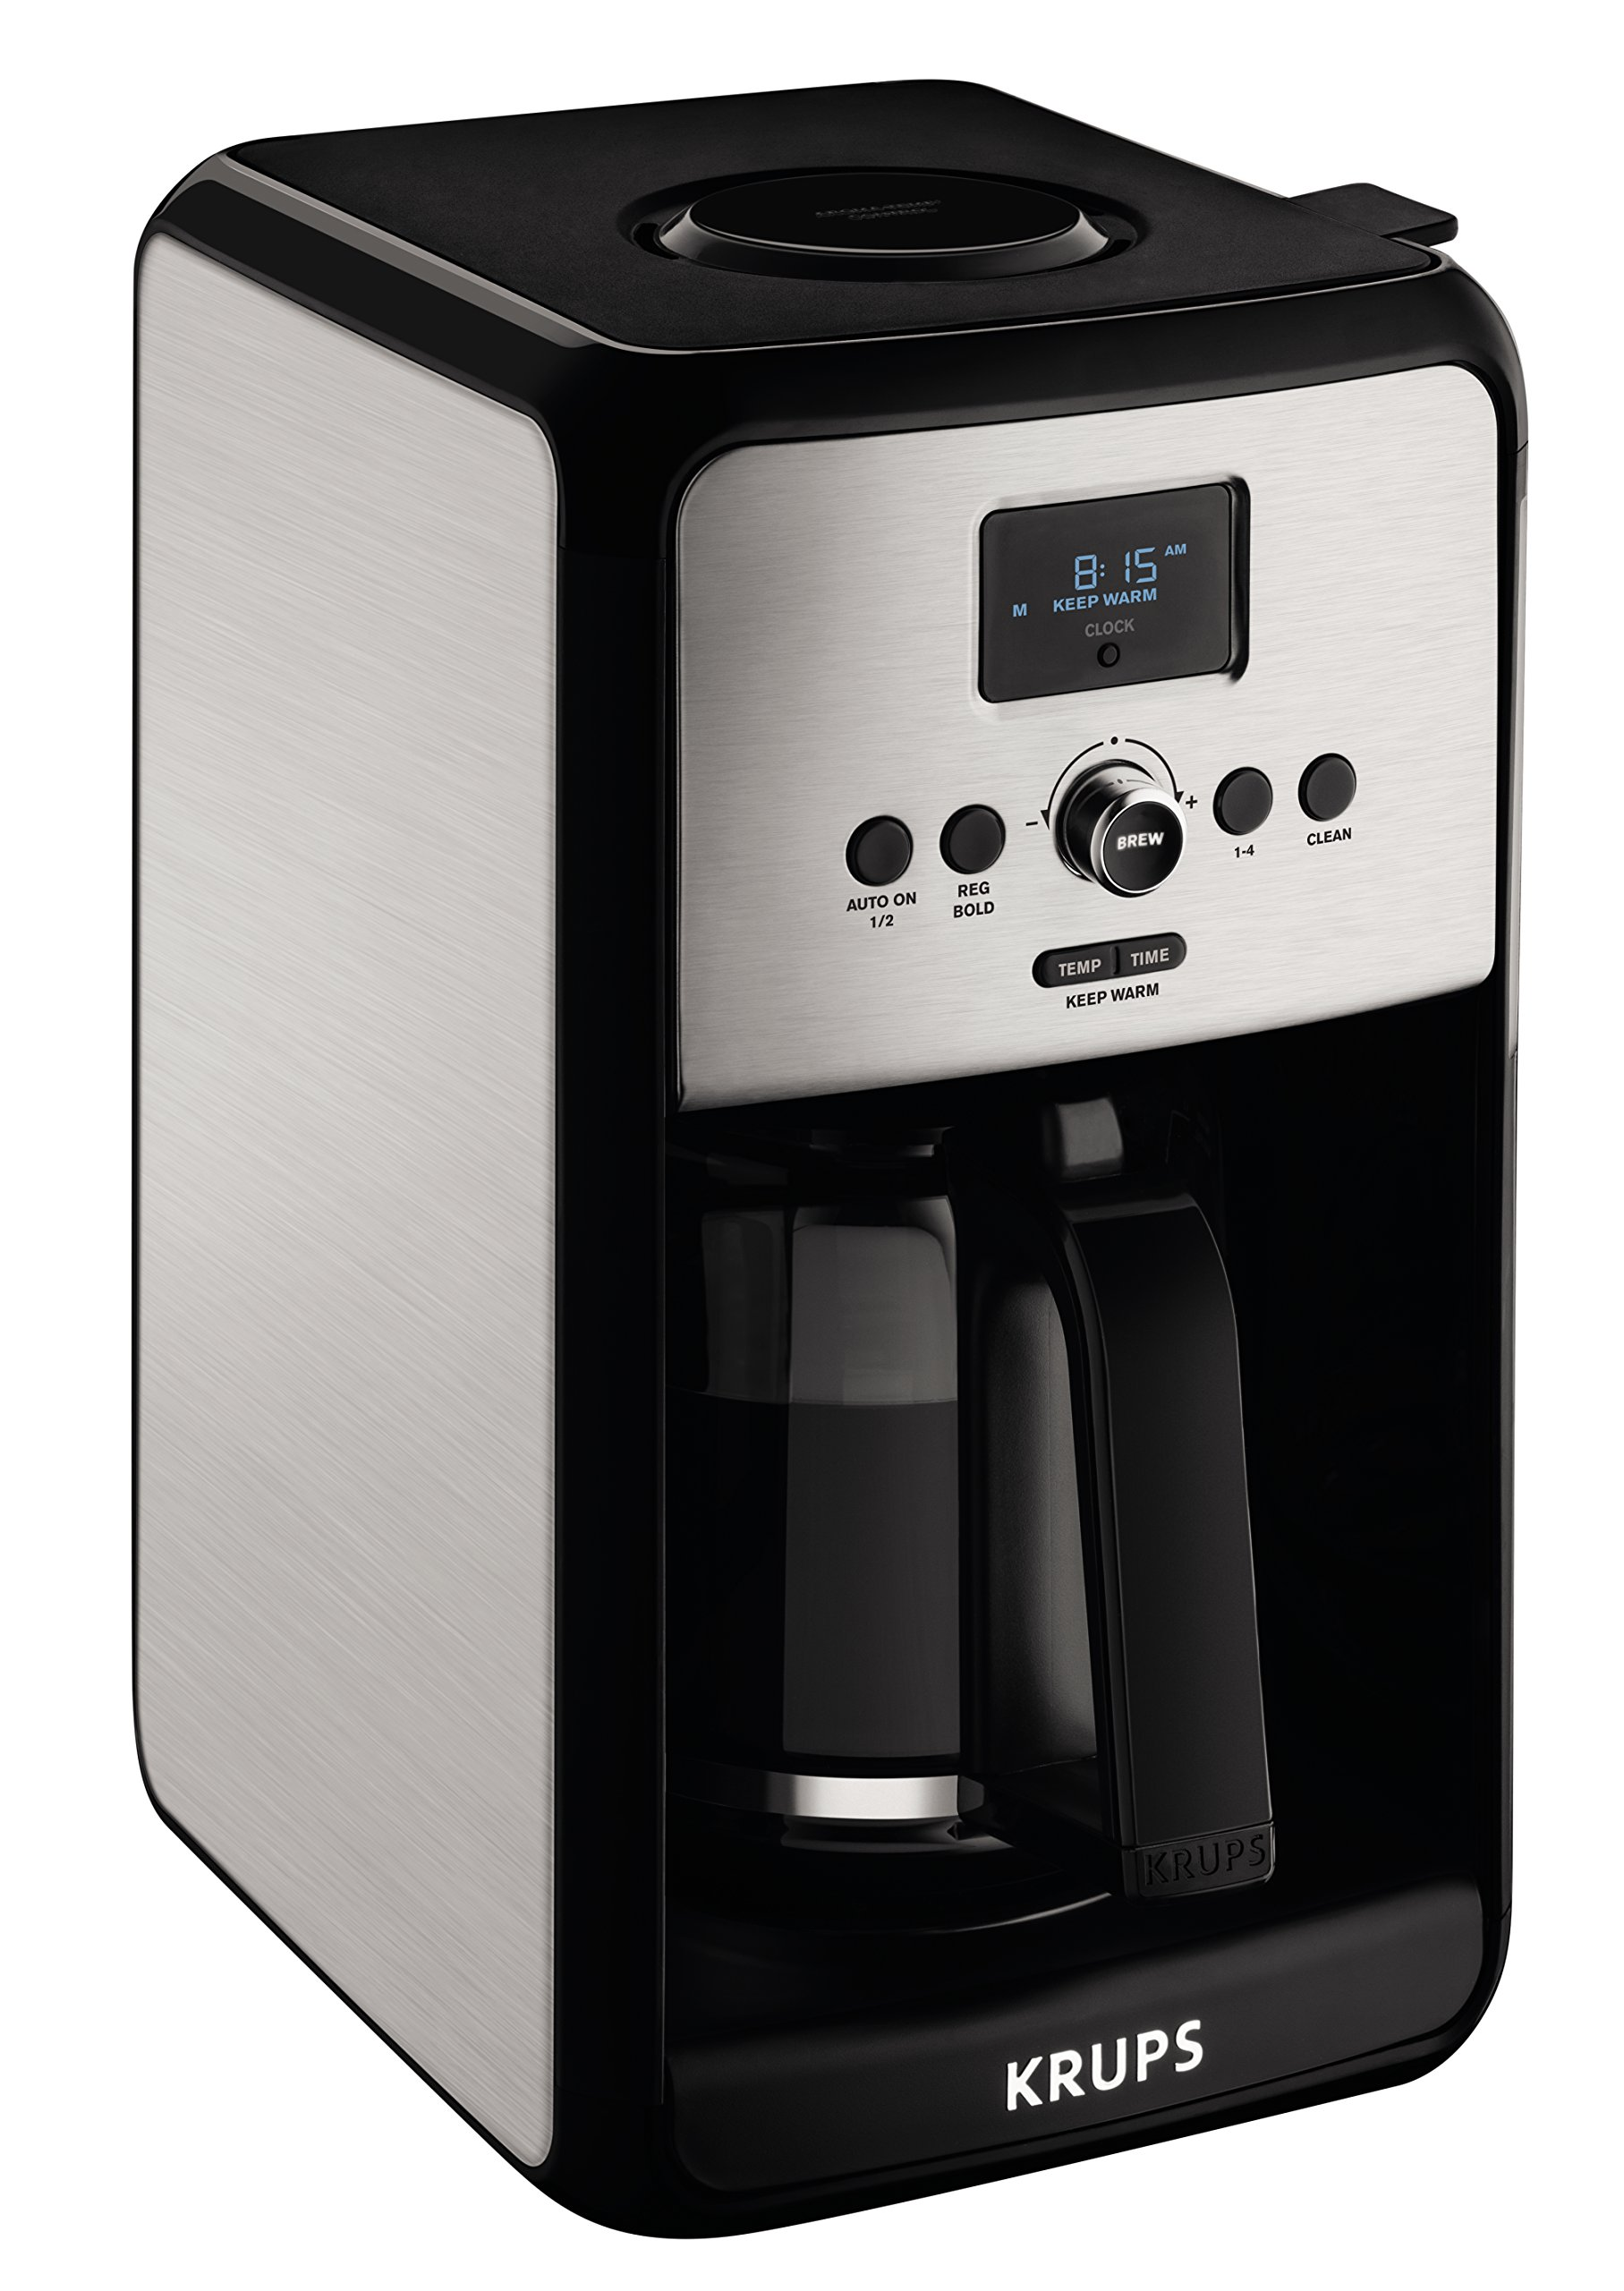 KRUPS EC314050 Programmable Digital Coffee Maker Machine with Stainless Steel Body and LED Control Panel,12-Cups, Silver